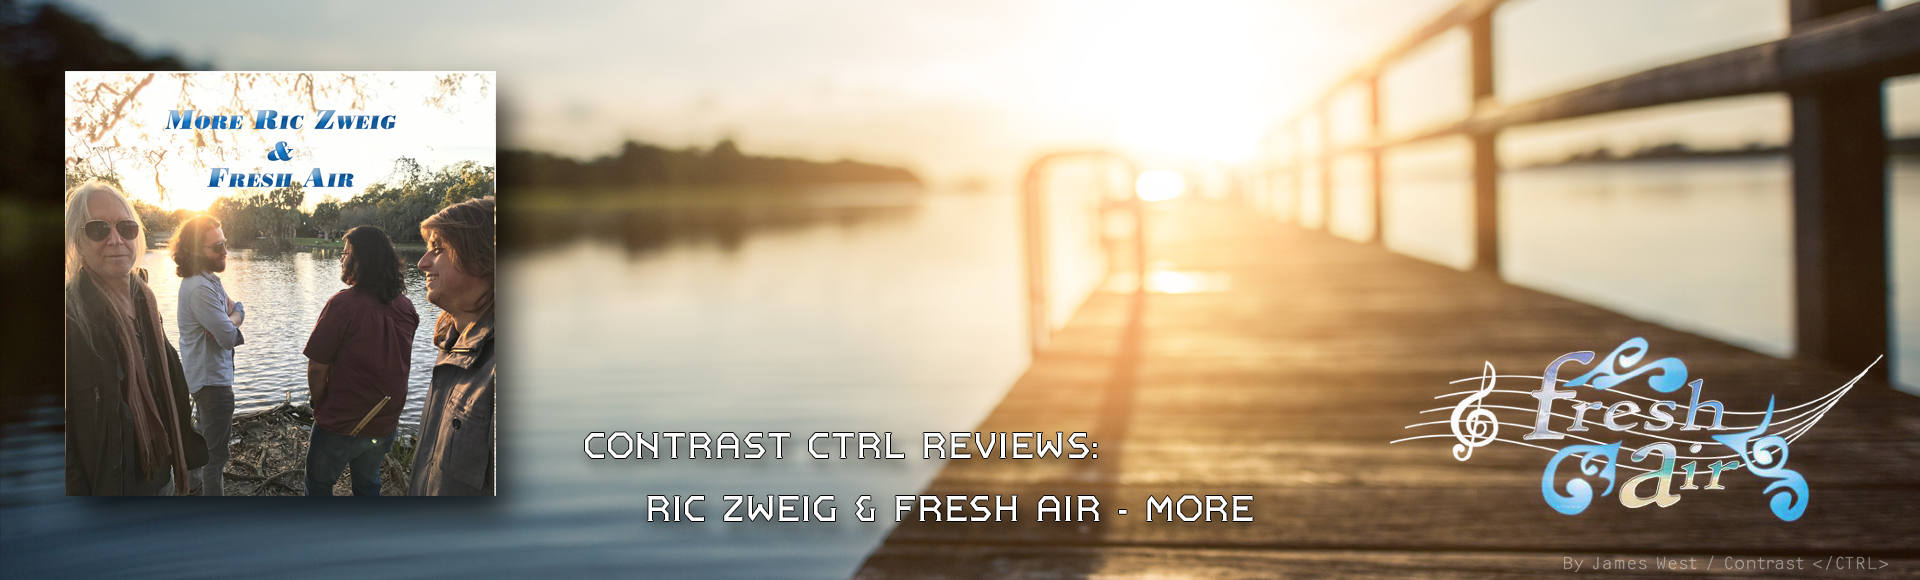 "Review Time: Ric Zweig & Fresh Air ""More"""